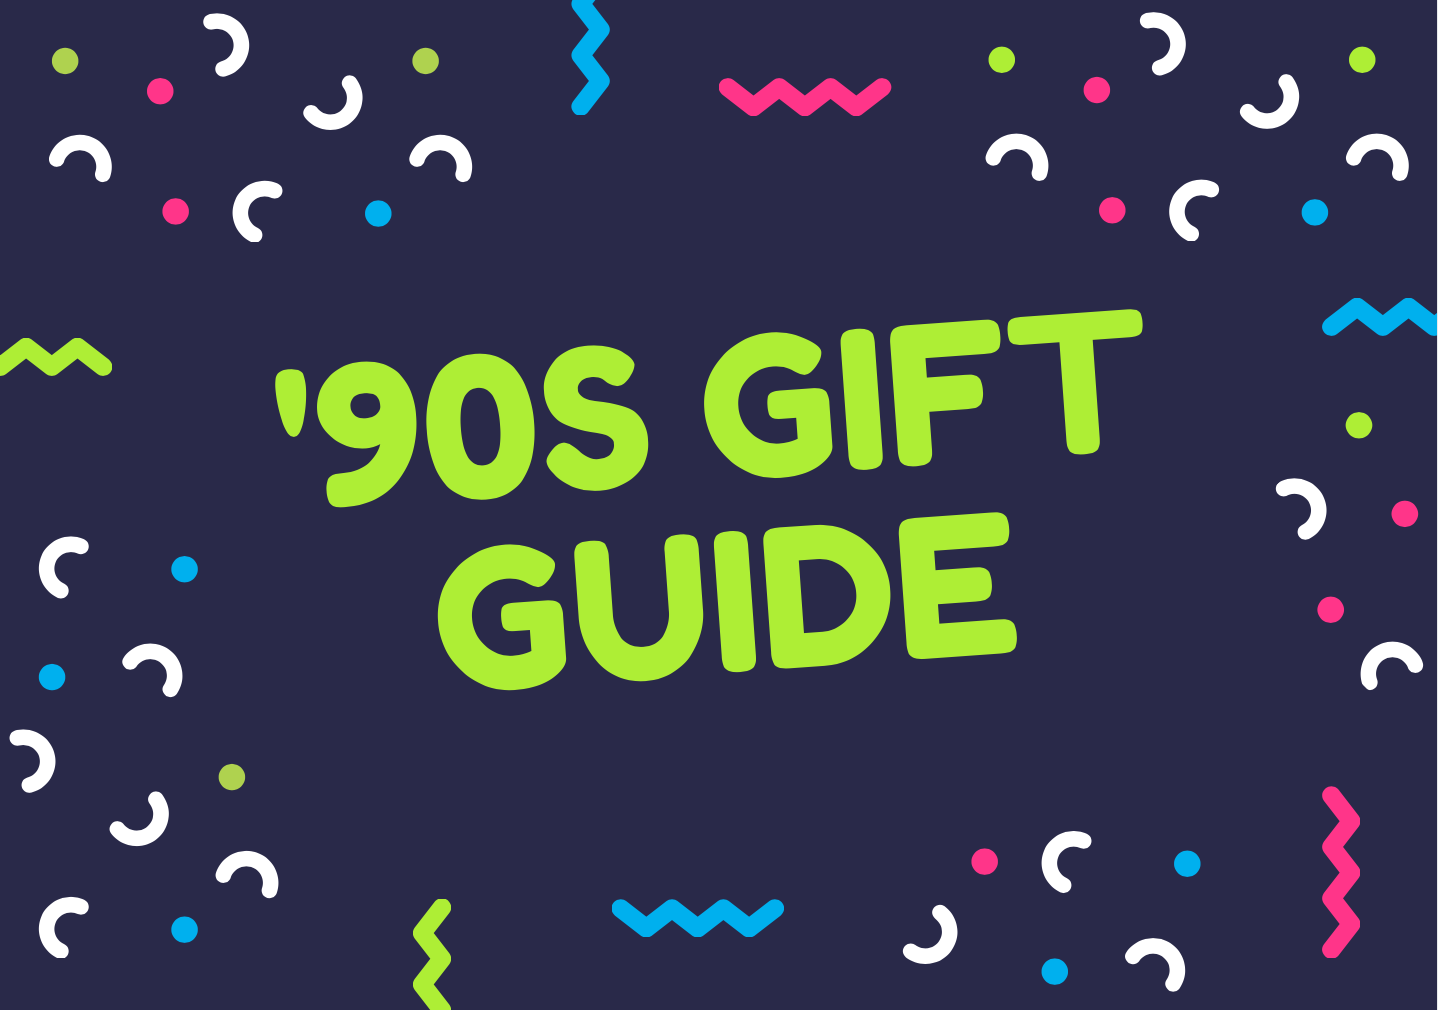 90s gifts and ideas